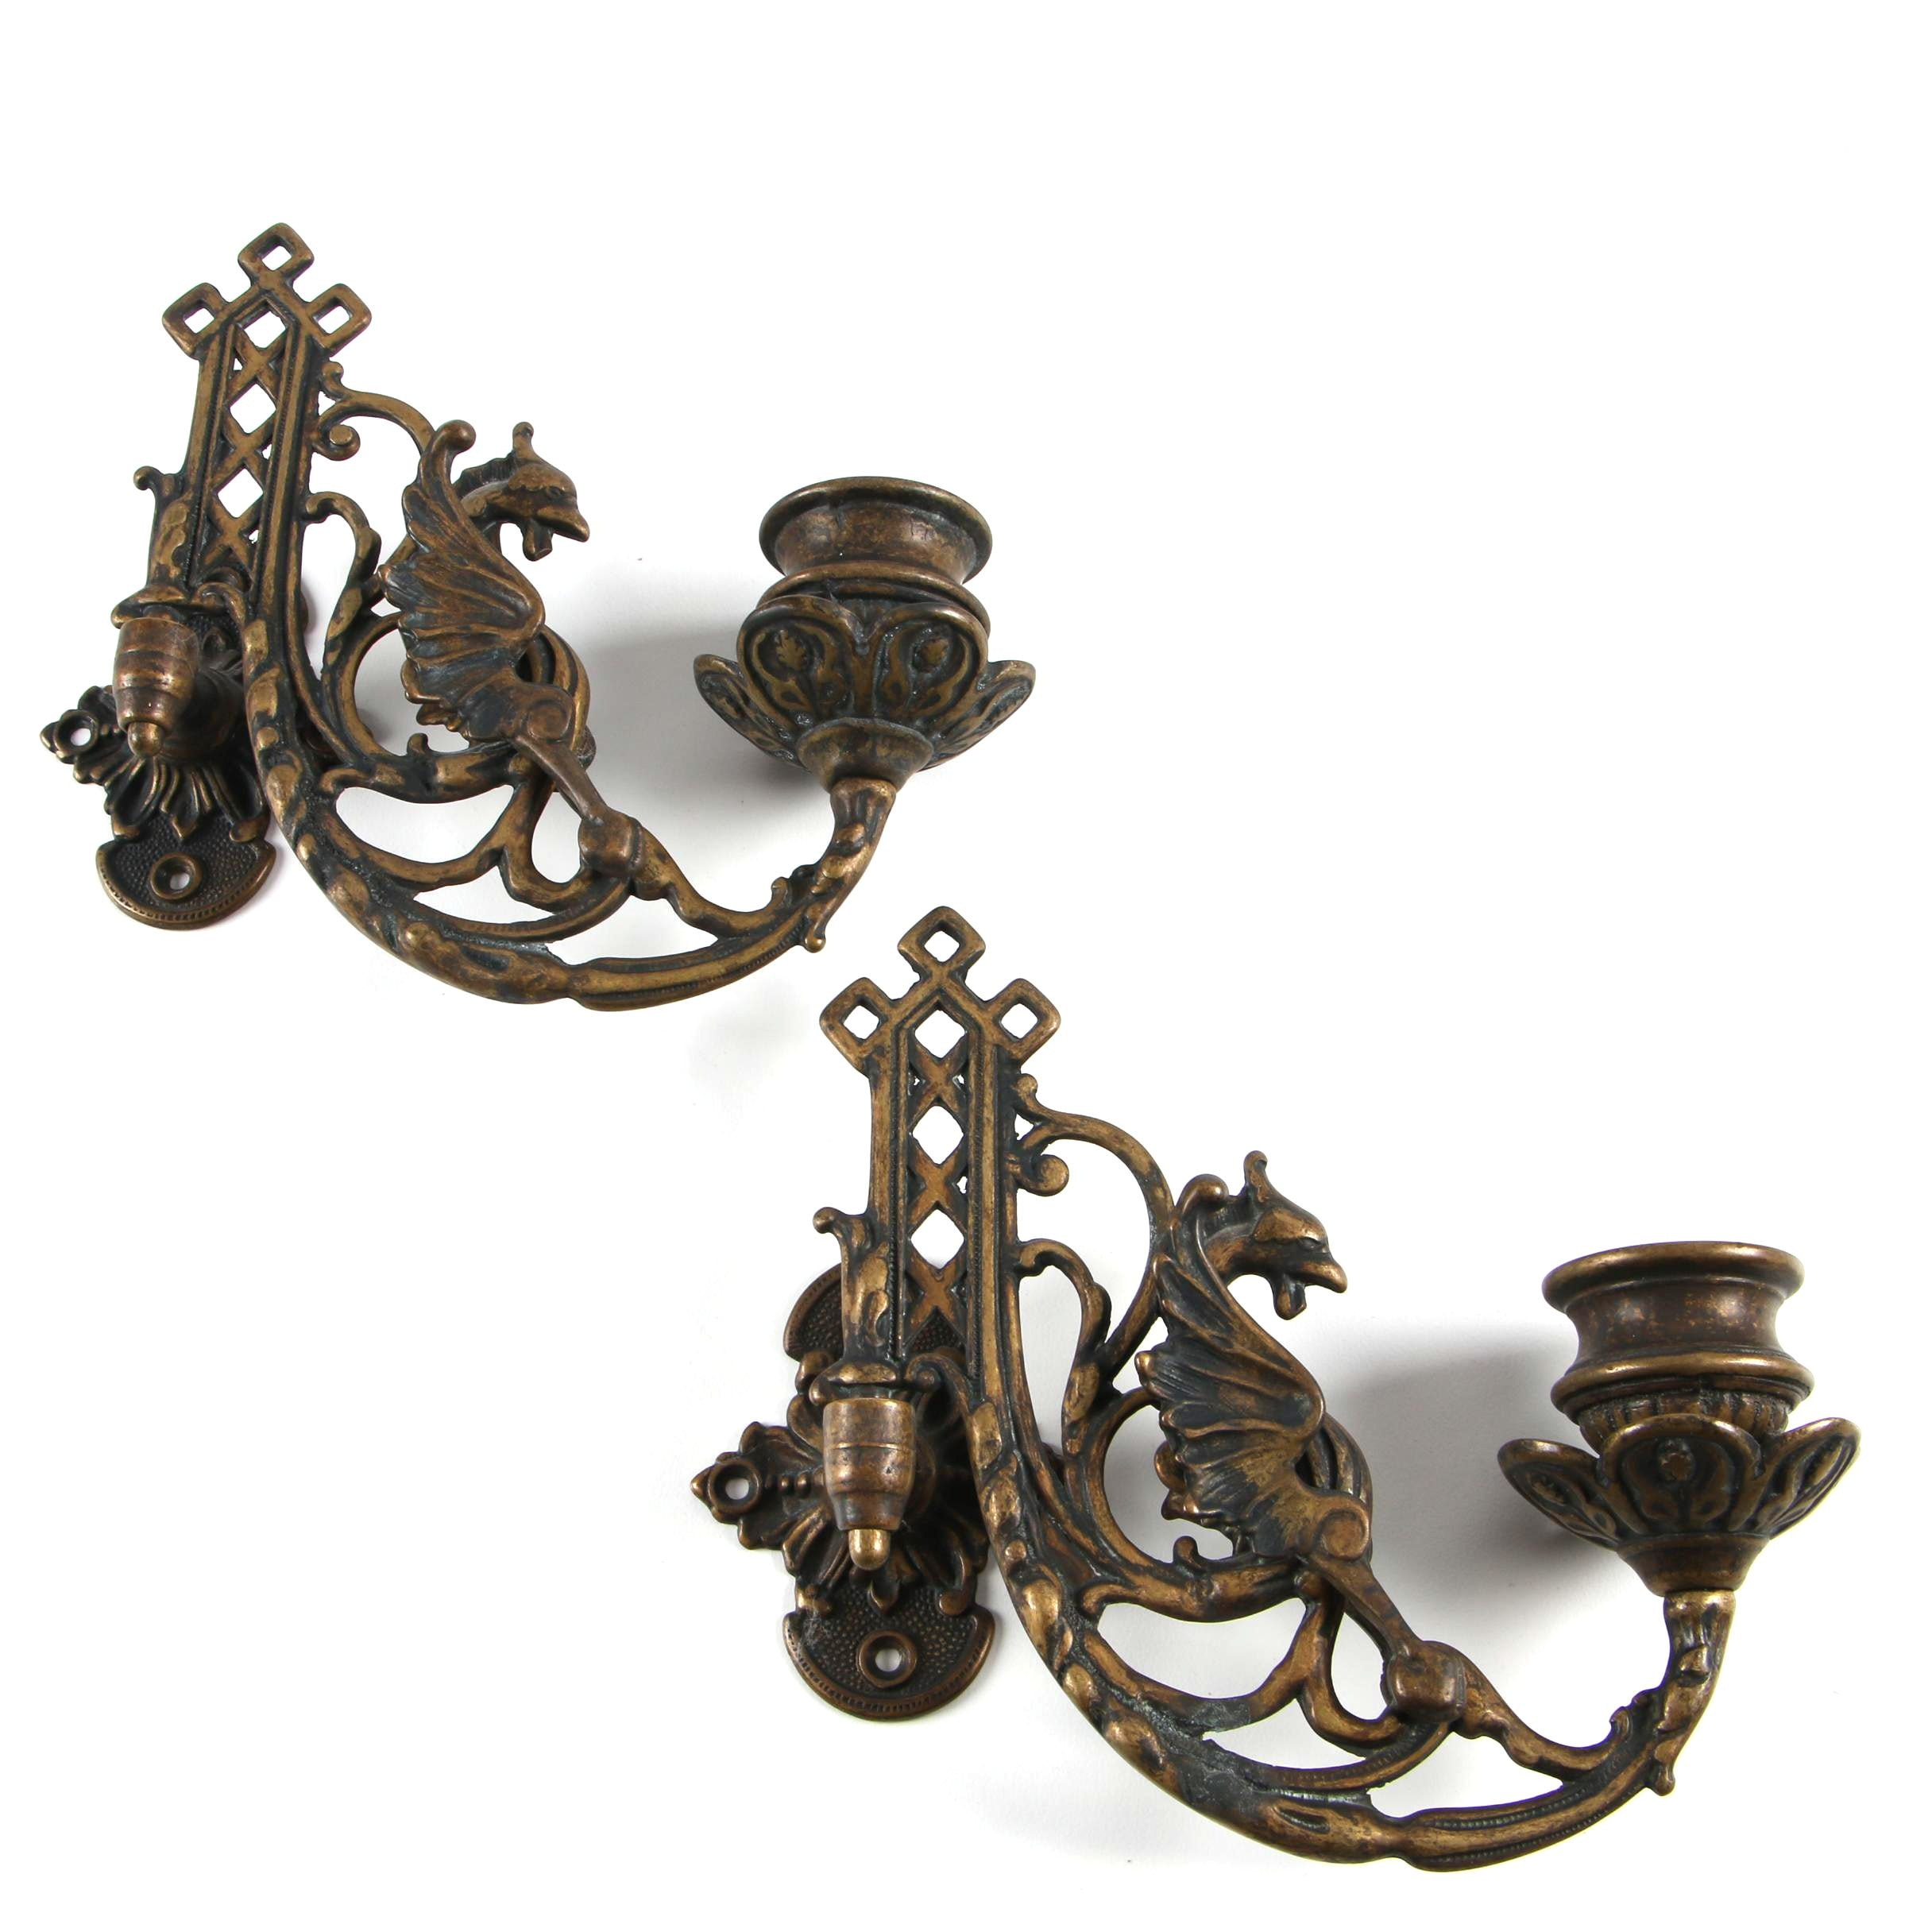 Italian Brass Swing Arm Dragon Themed Sconces